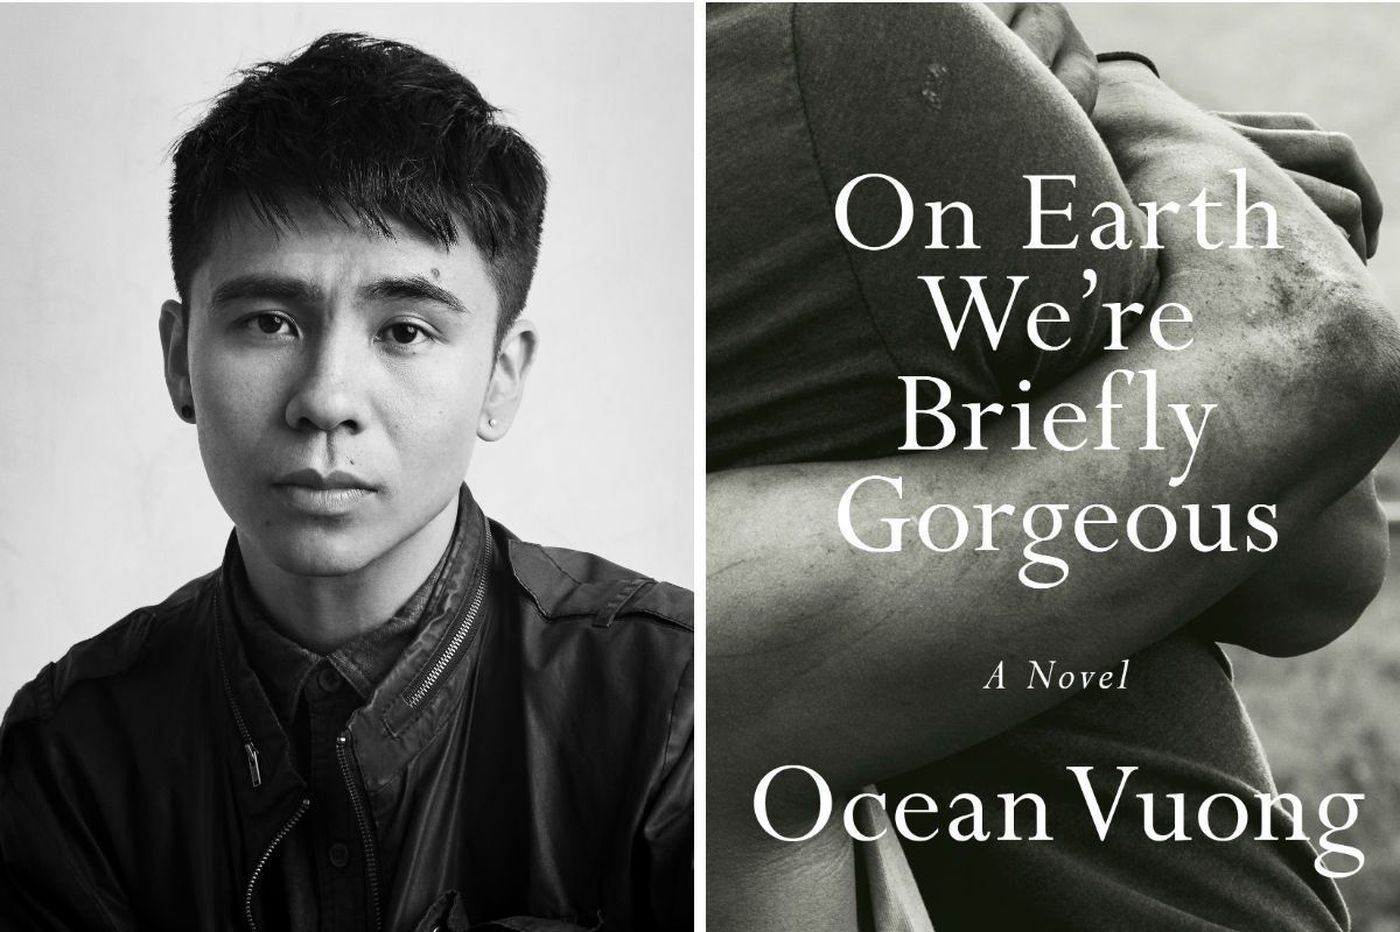 'On Earth We're Briefly Gorgeous' by Ocean Vuong: A stunningly lyrical exploration of familial love and language